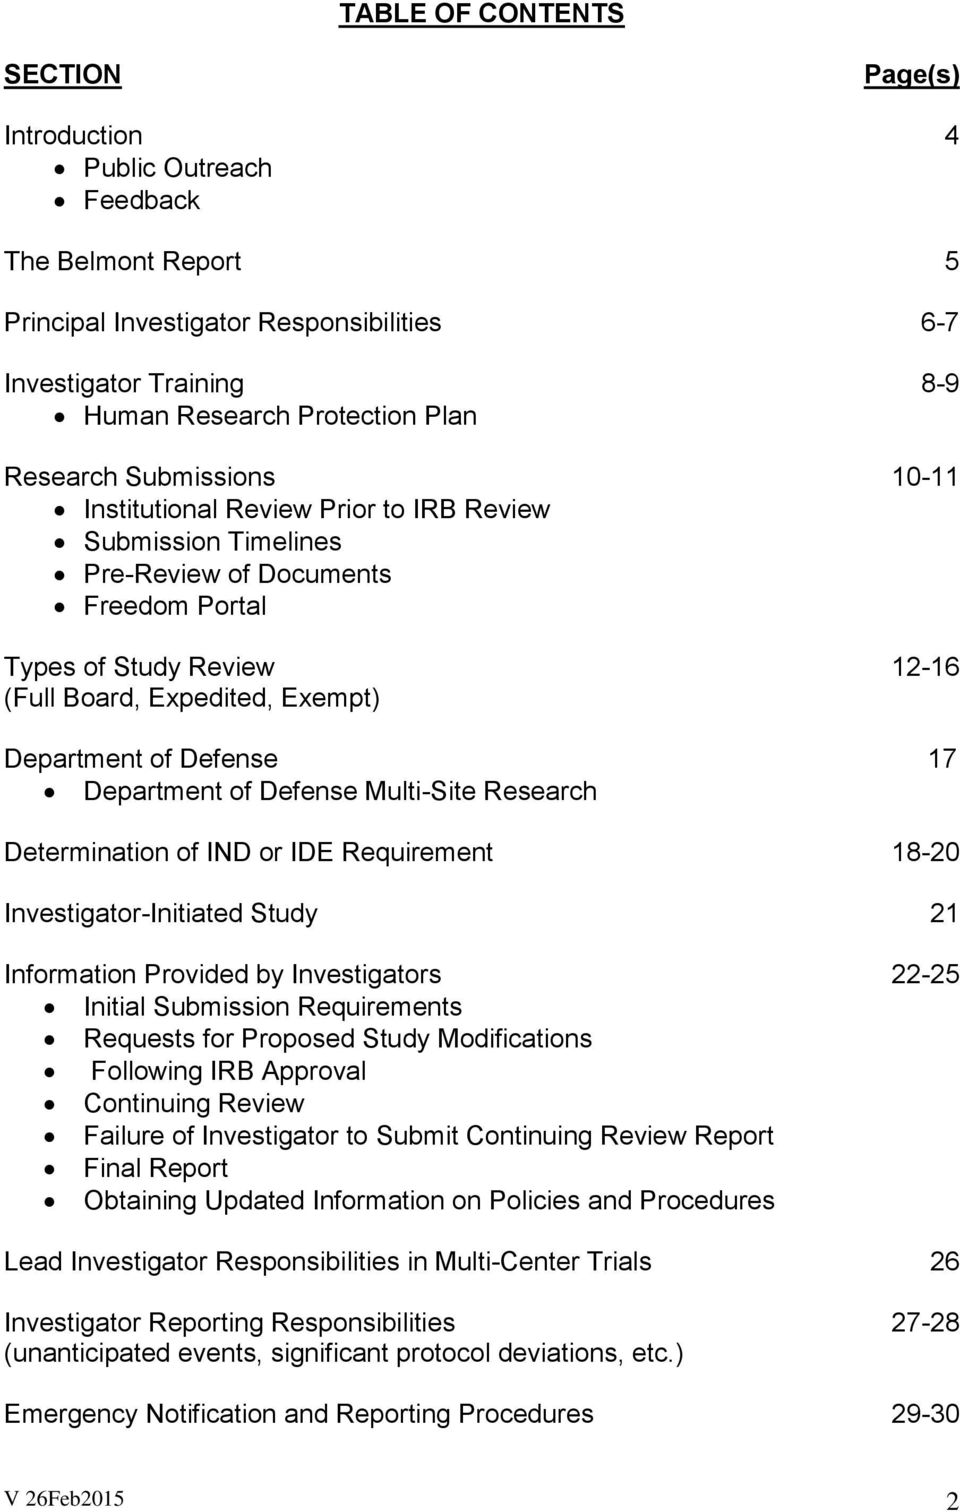 of Defense 17 Department of Defense Multi-Site Research Determination of IND or IDE Requirement 18-20 Investigator-Initiated Study 21 Information Provided by Investigators 22-25 Initial Submission